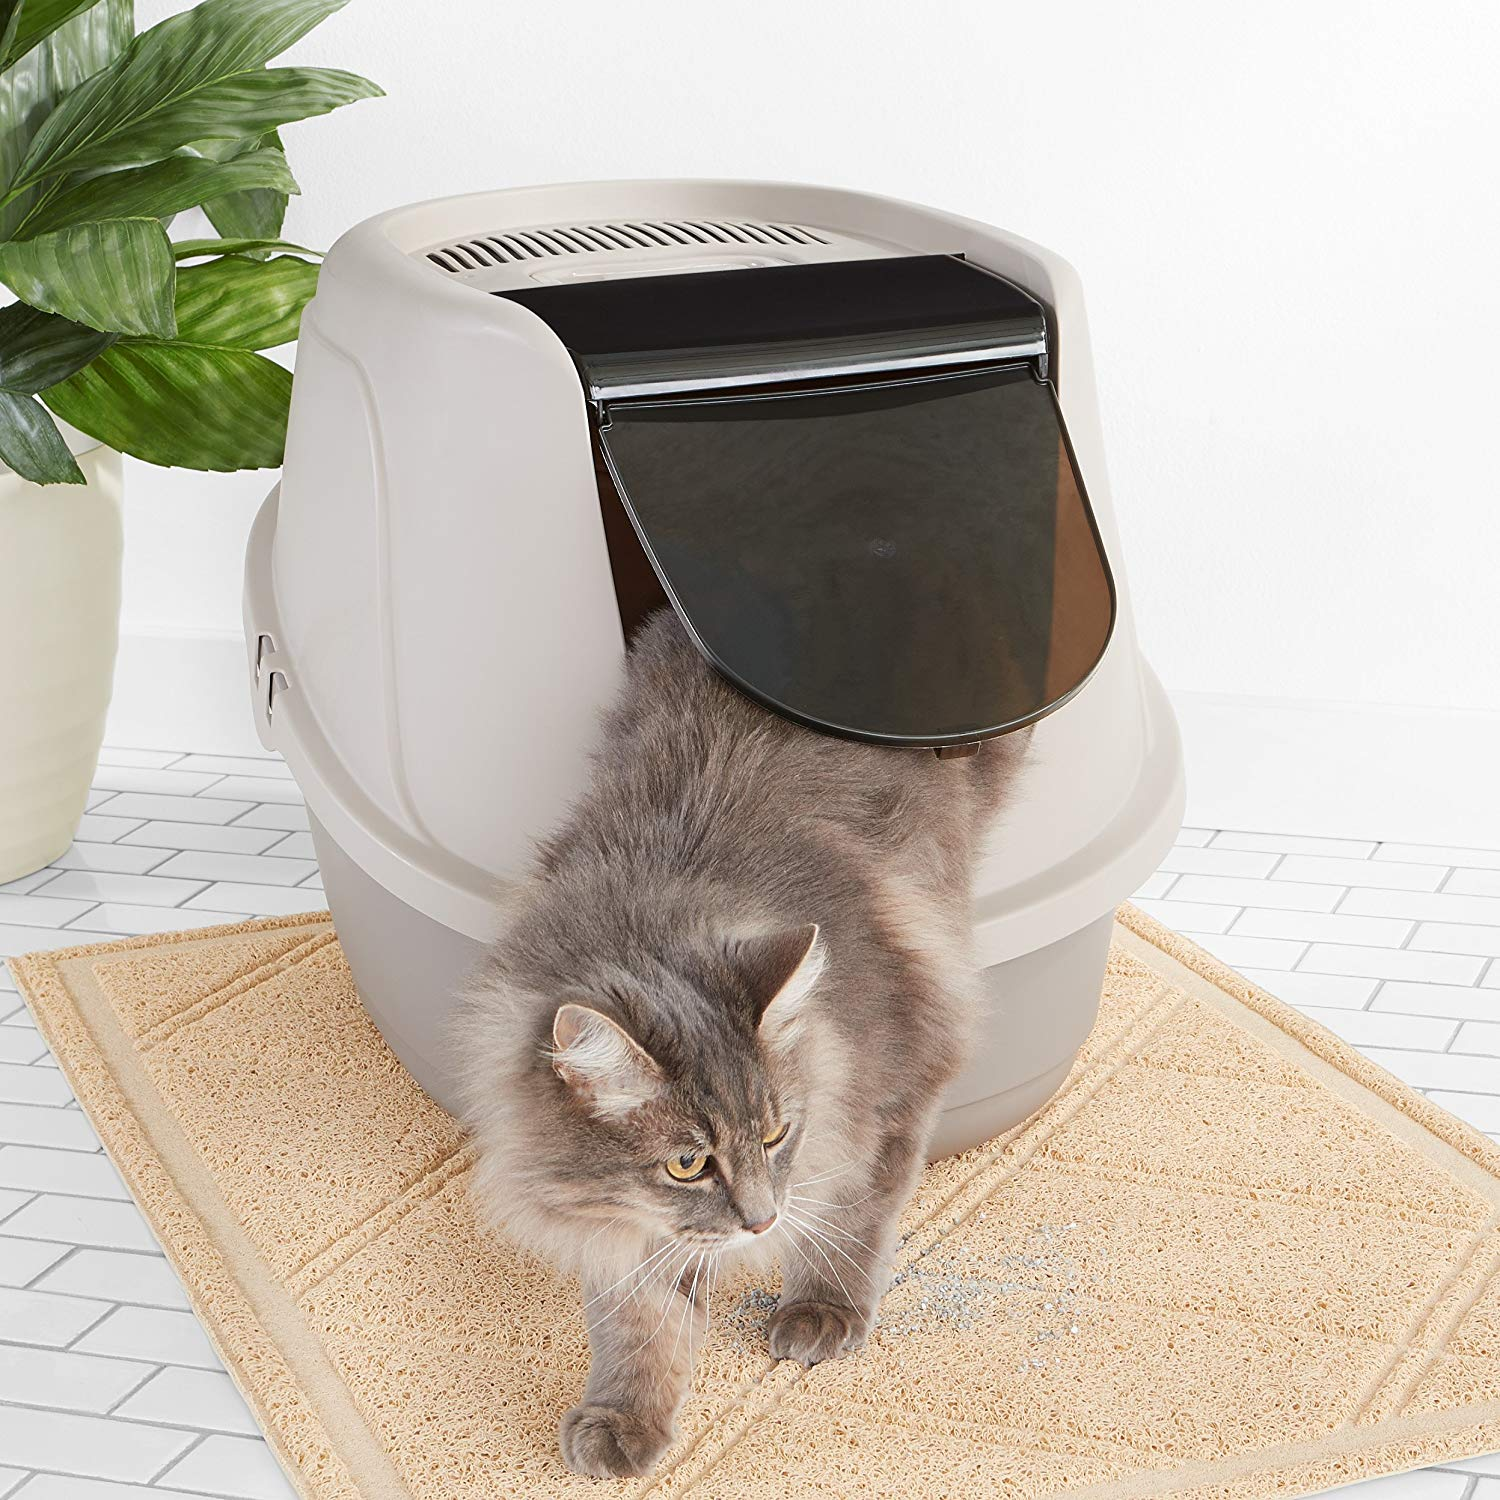 The Best Dog Proof Litter Box To Buy In November 2019